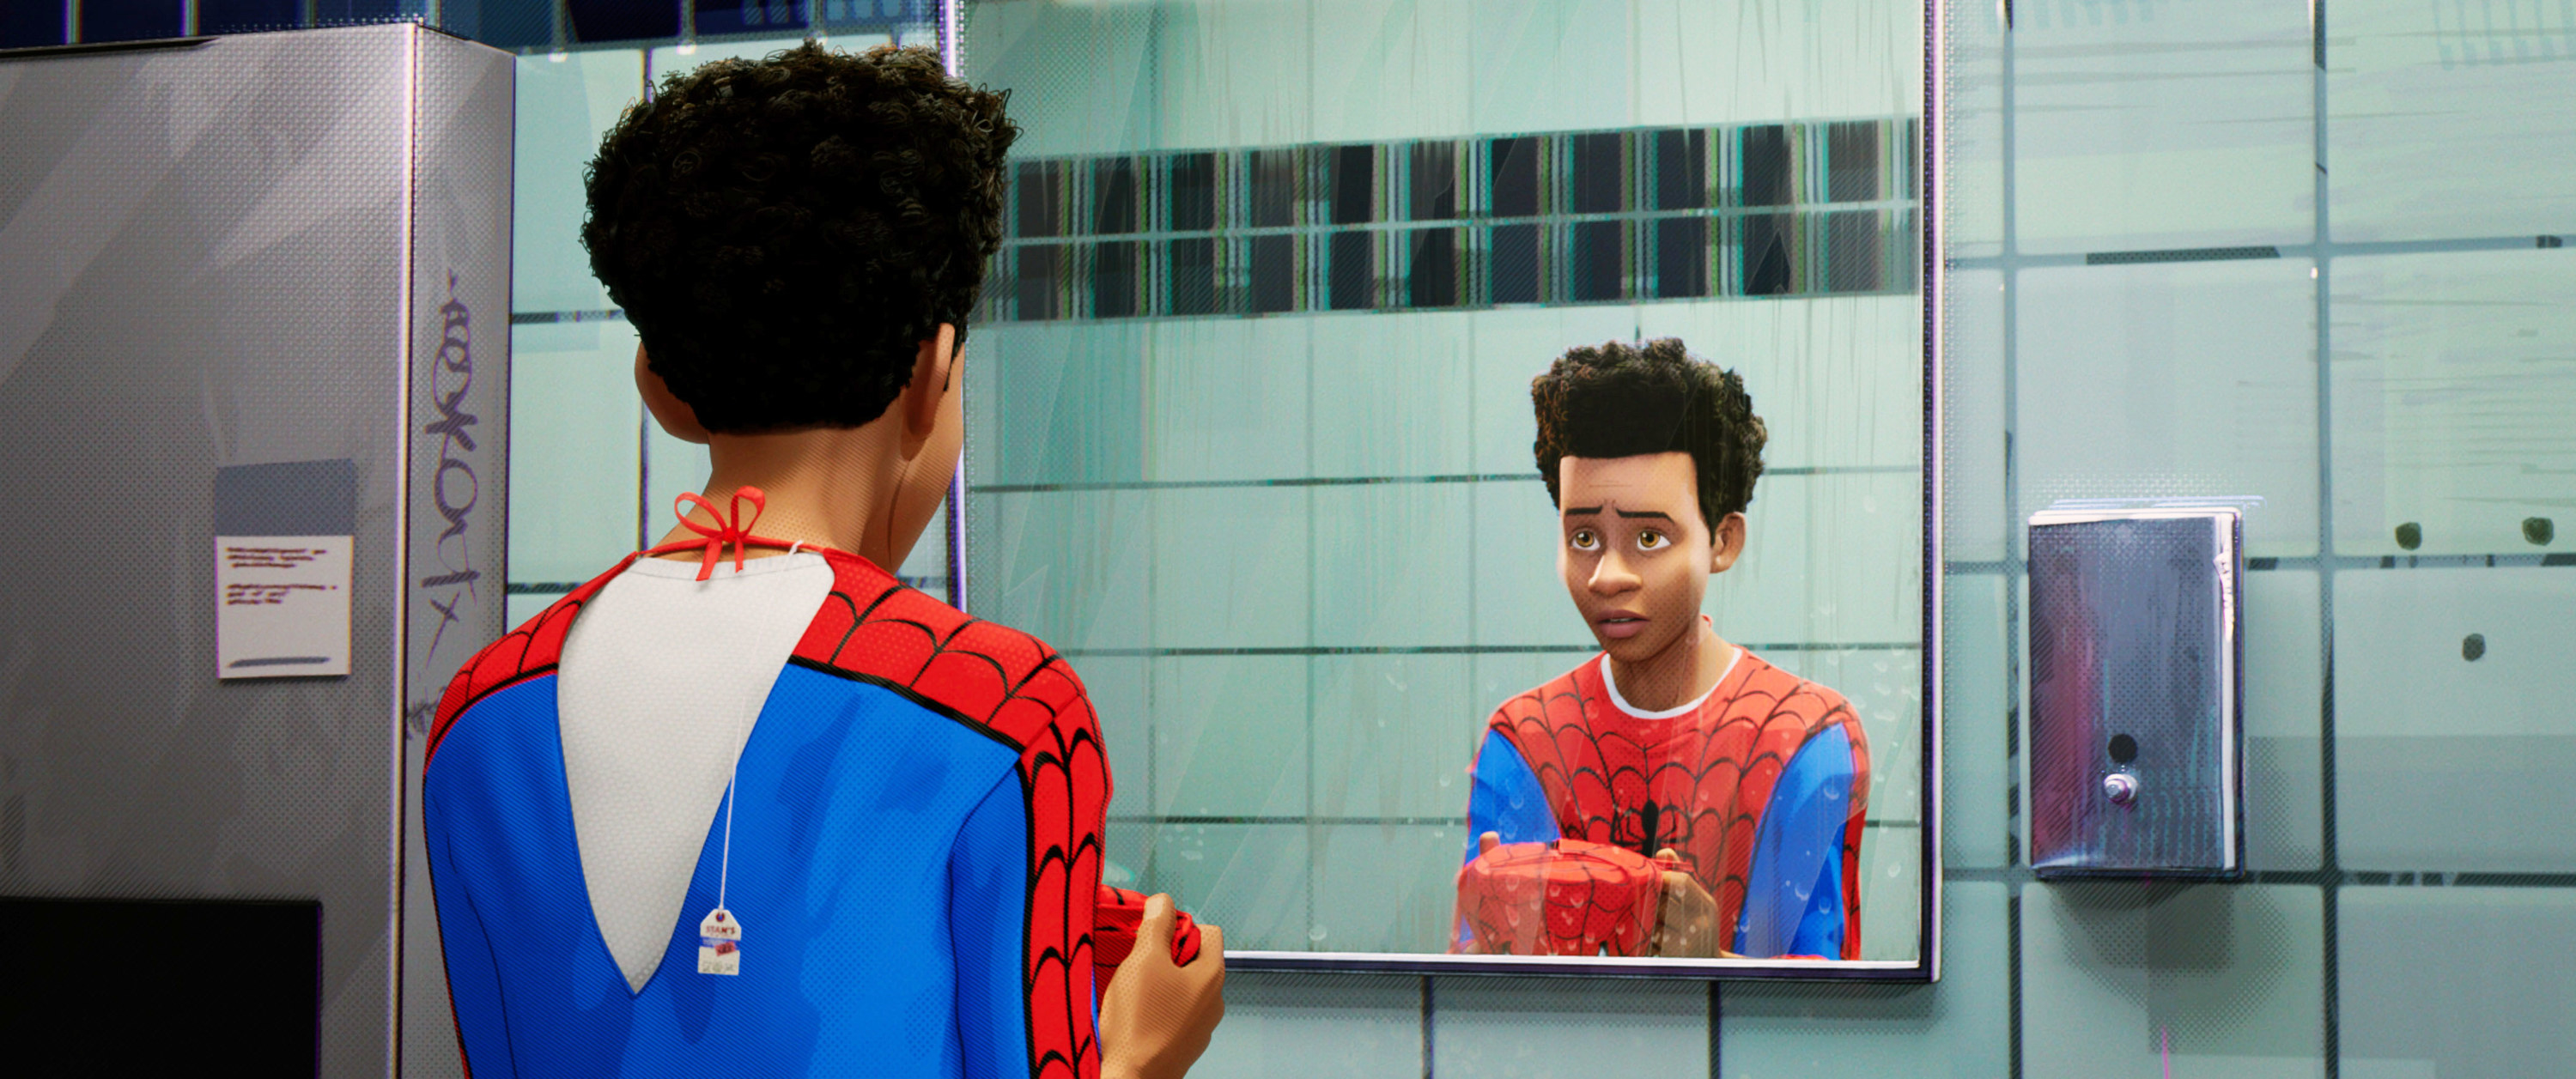 """Miles Morales looking at himself in a mirror in a scene from """"Spider-Man: Into the Spider-Verse"""""""